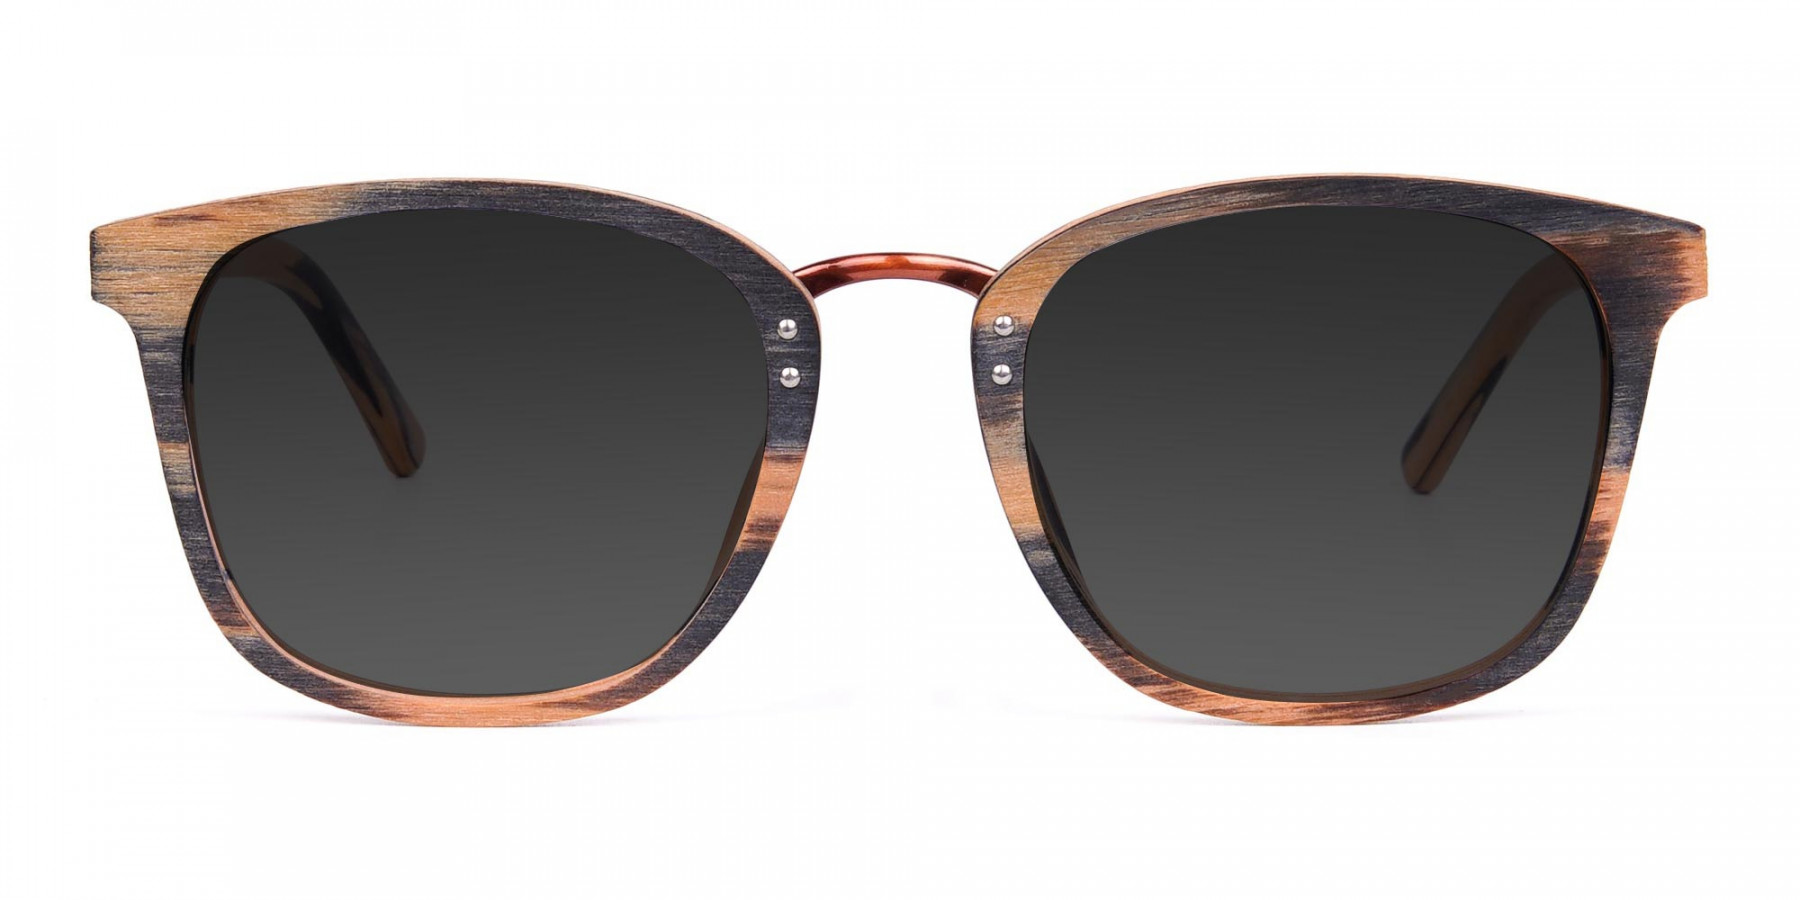 Grey-Wooden-Large-Square-Sunglasses-3